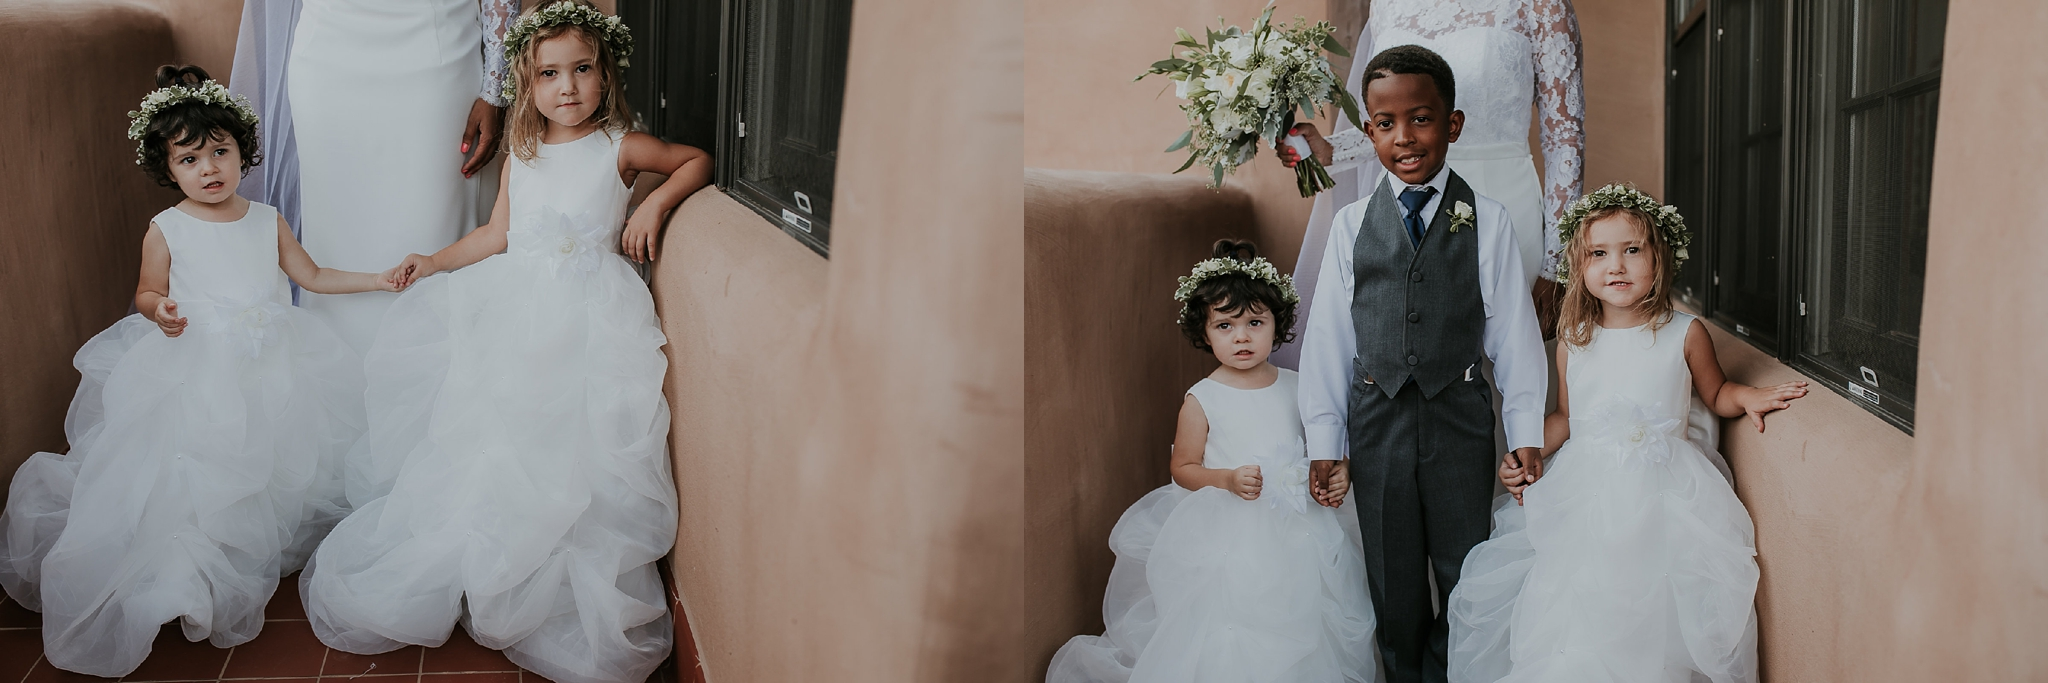 Alicia+lucia+photography+-+albuquerque+wedding+photographer+-+santa+fe+wedding+photography+-+new+mexico+wedding+photographer+-+new+mexico+wedding+-+flower+girl+-+wedding+flower+girl_0076.jpg